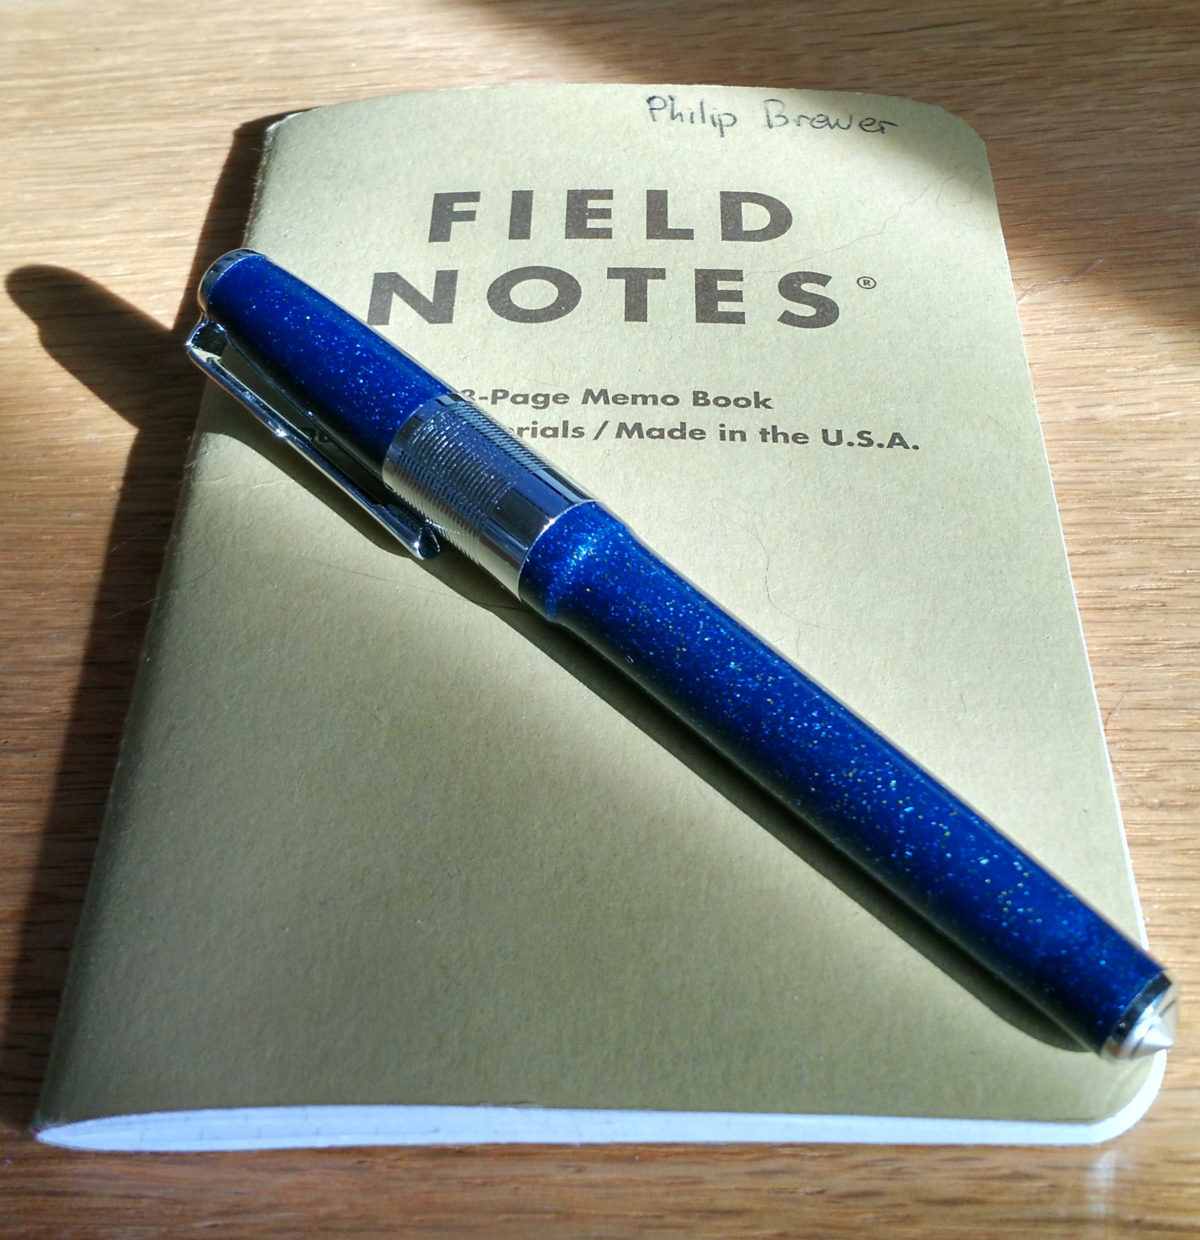 Field Notes RSS feed!